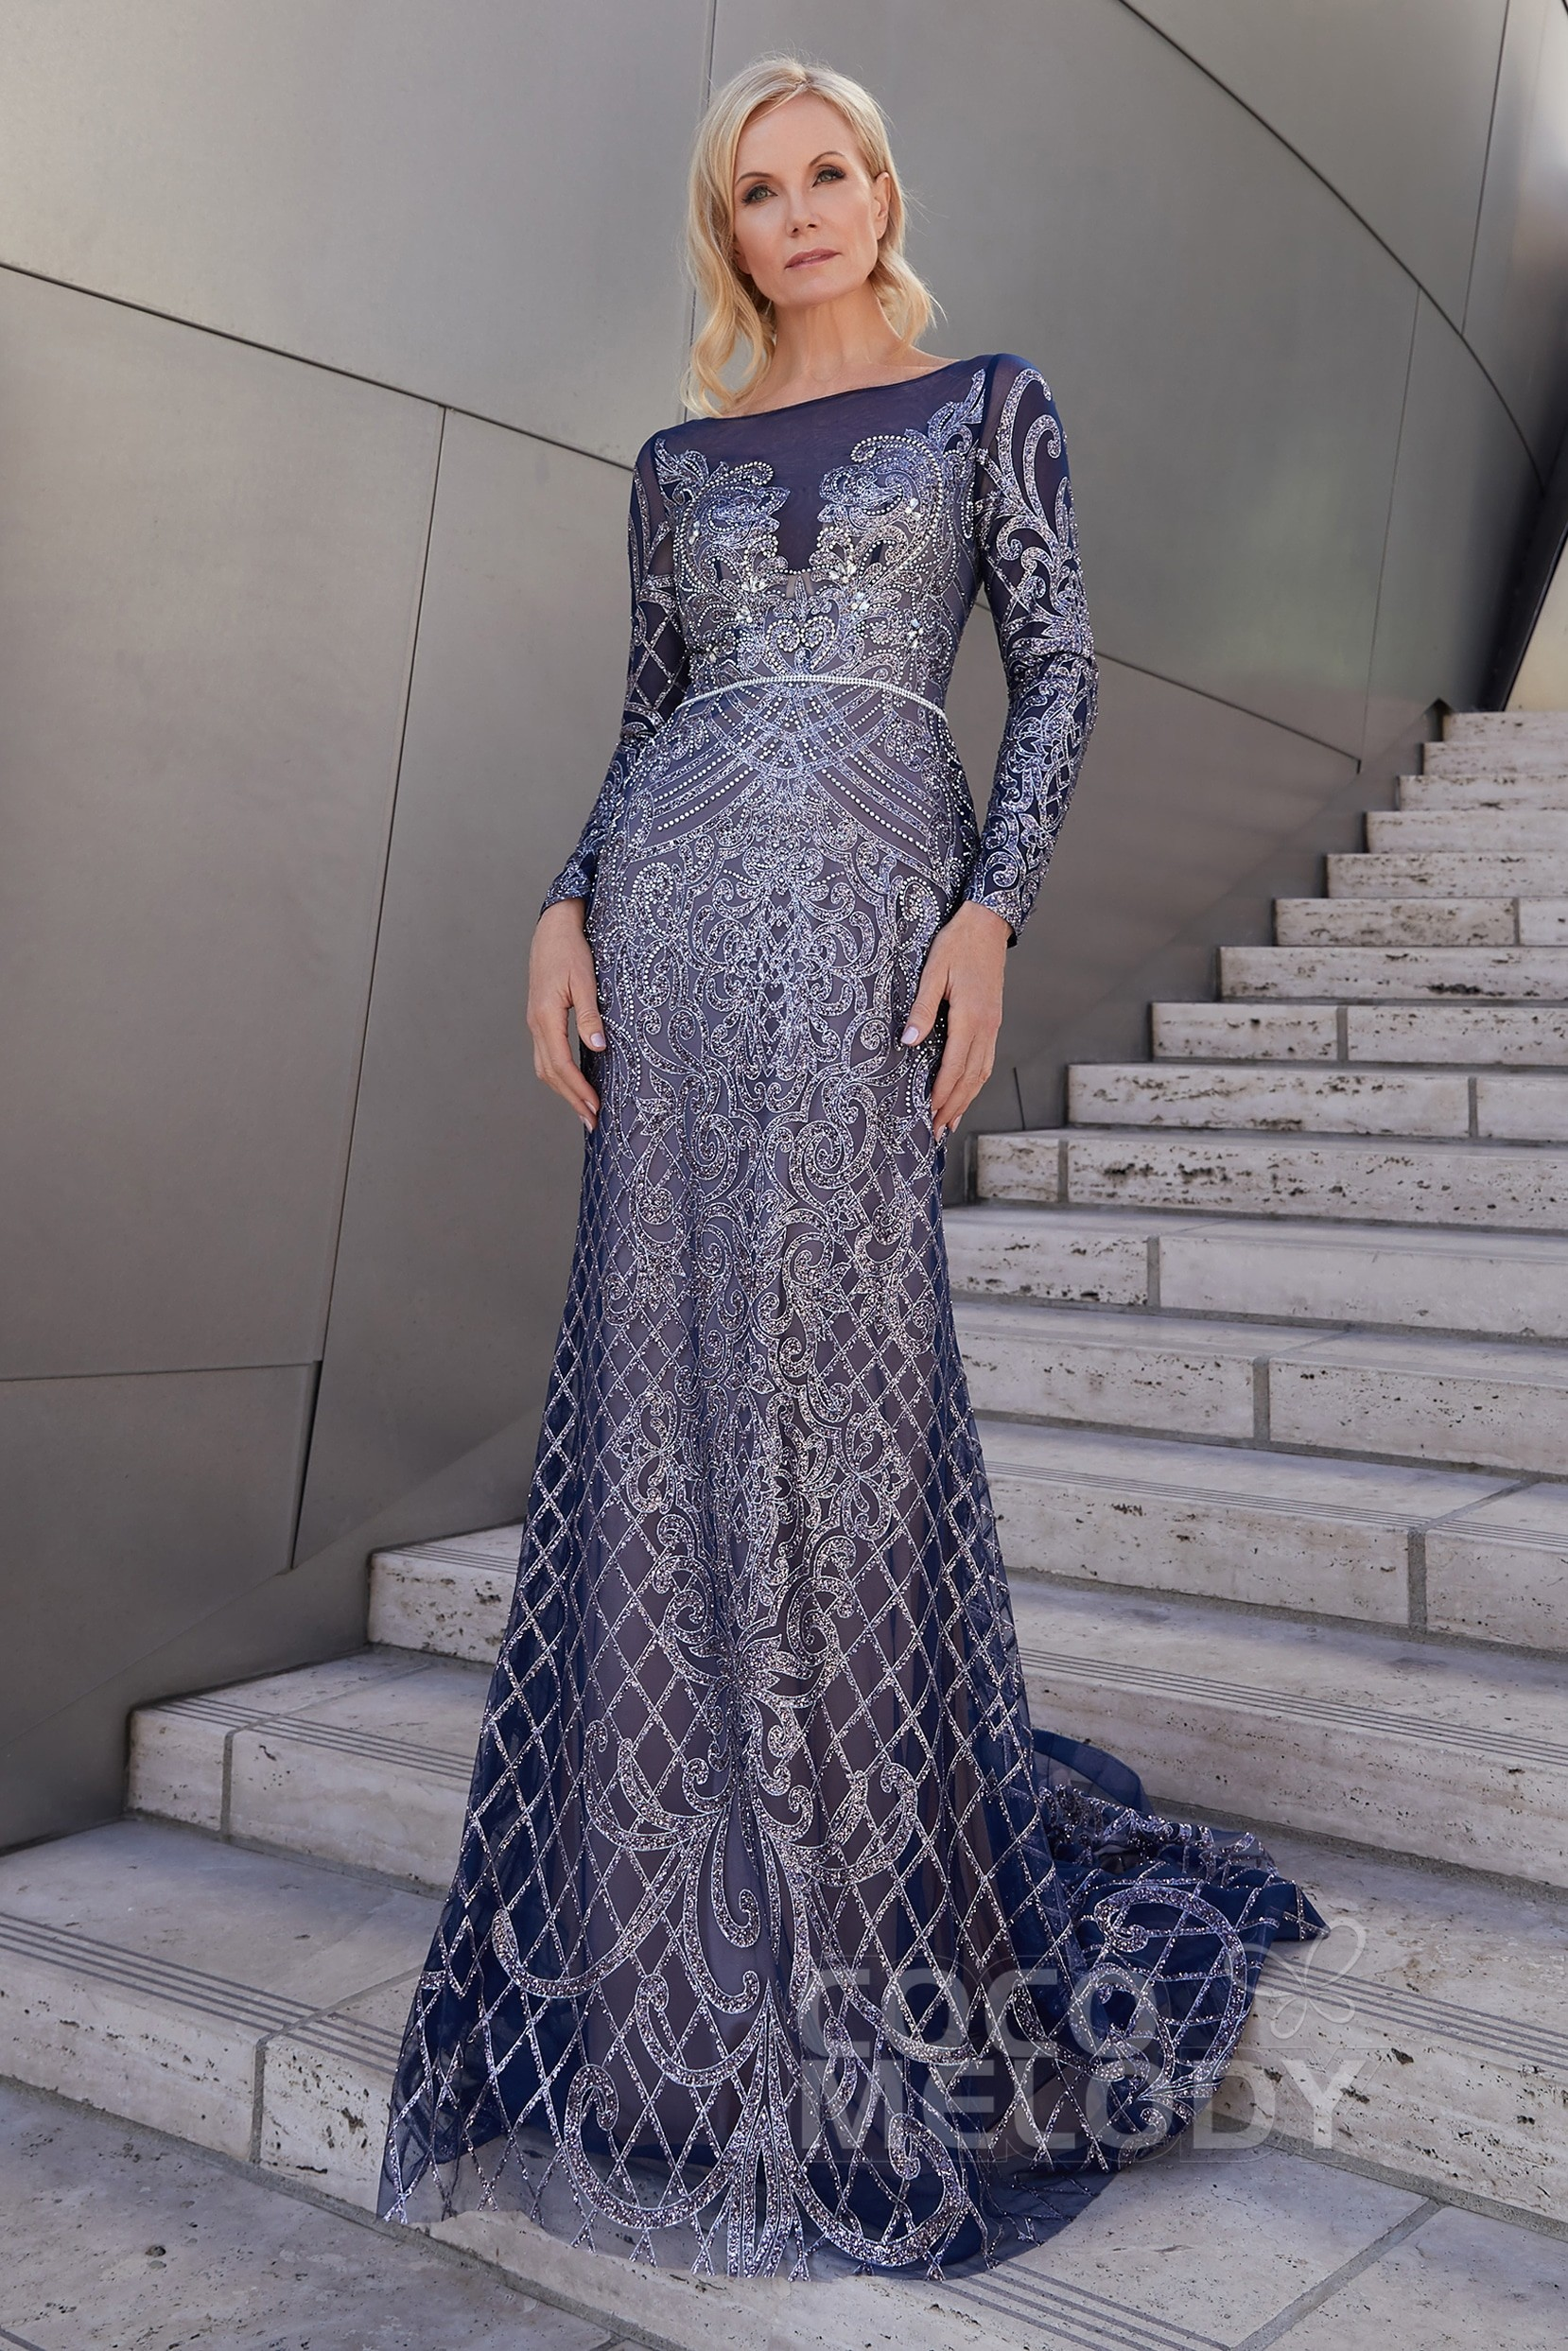 d74bda4577ce Trumpet-Mermaid Sweep-Brush Train Lace and Knitted Fabric Dress PR3619